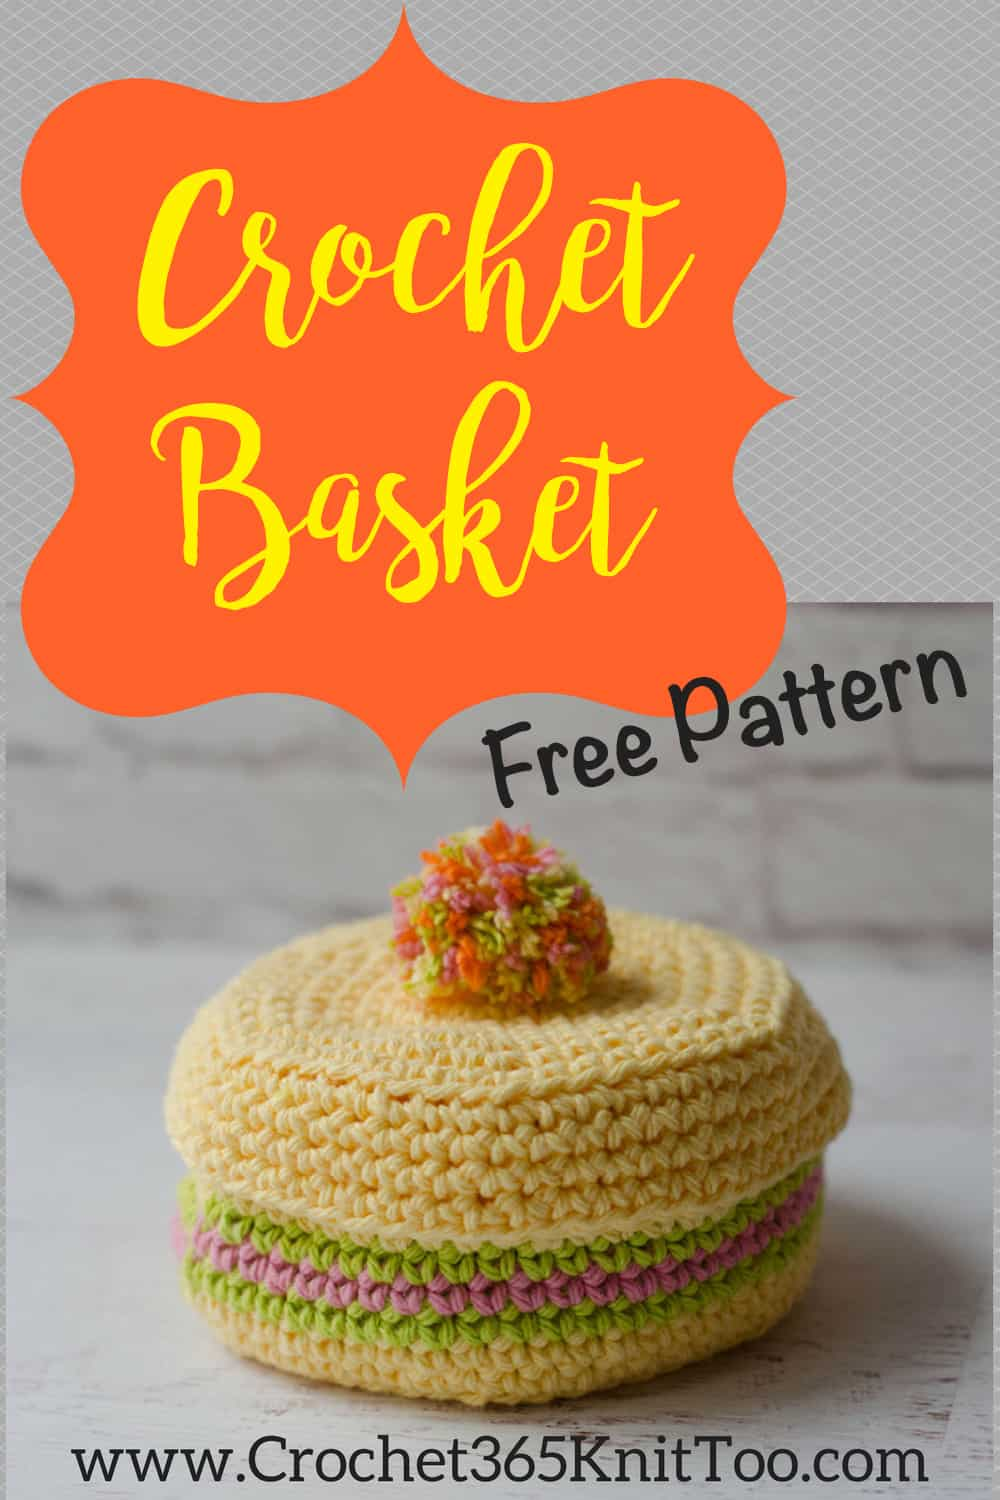 Crochet coaster basket pattern is fun to crochet.  Easy, free, crochet basket pattern!